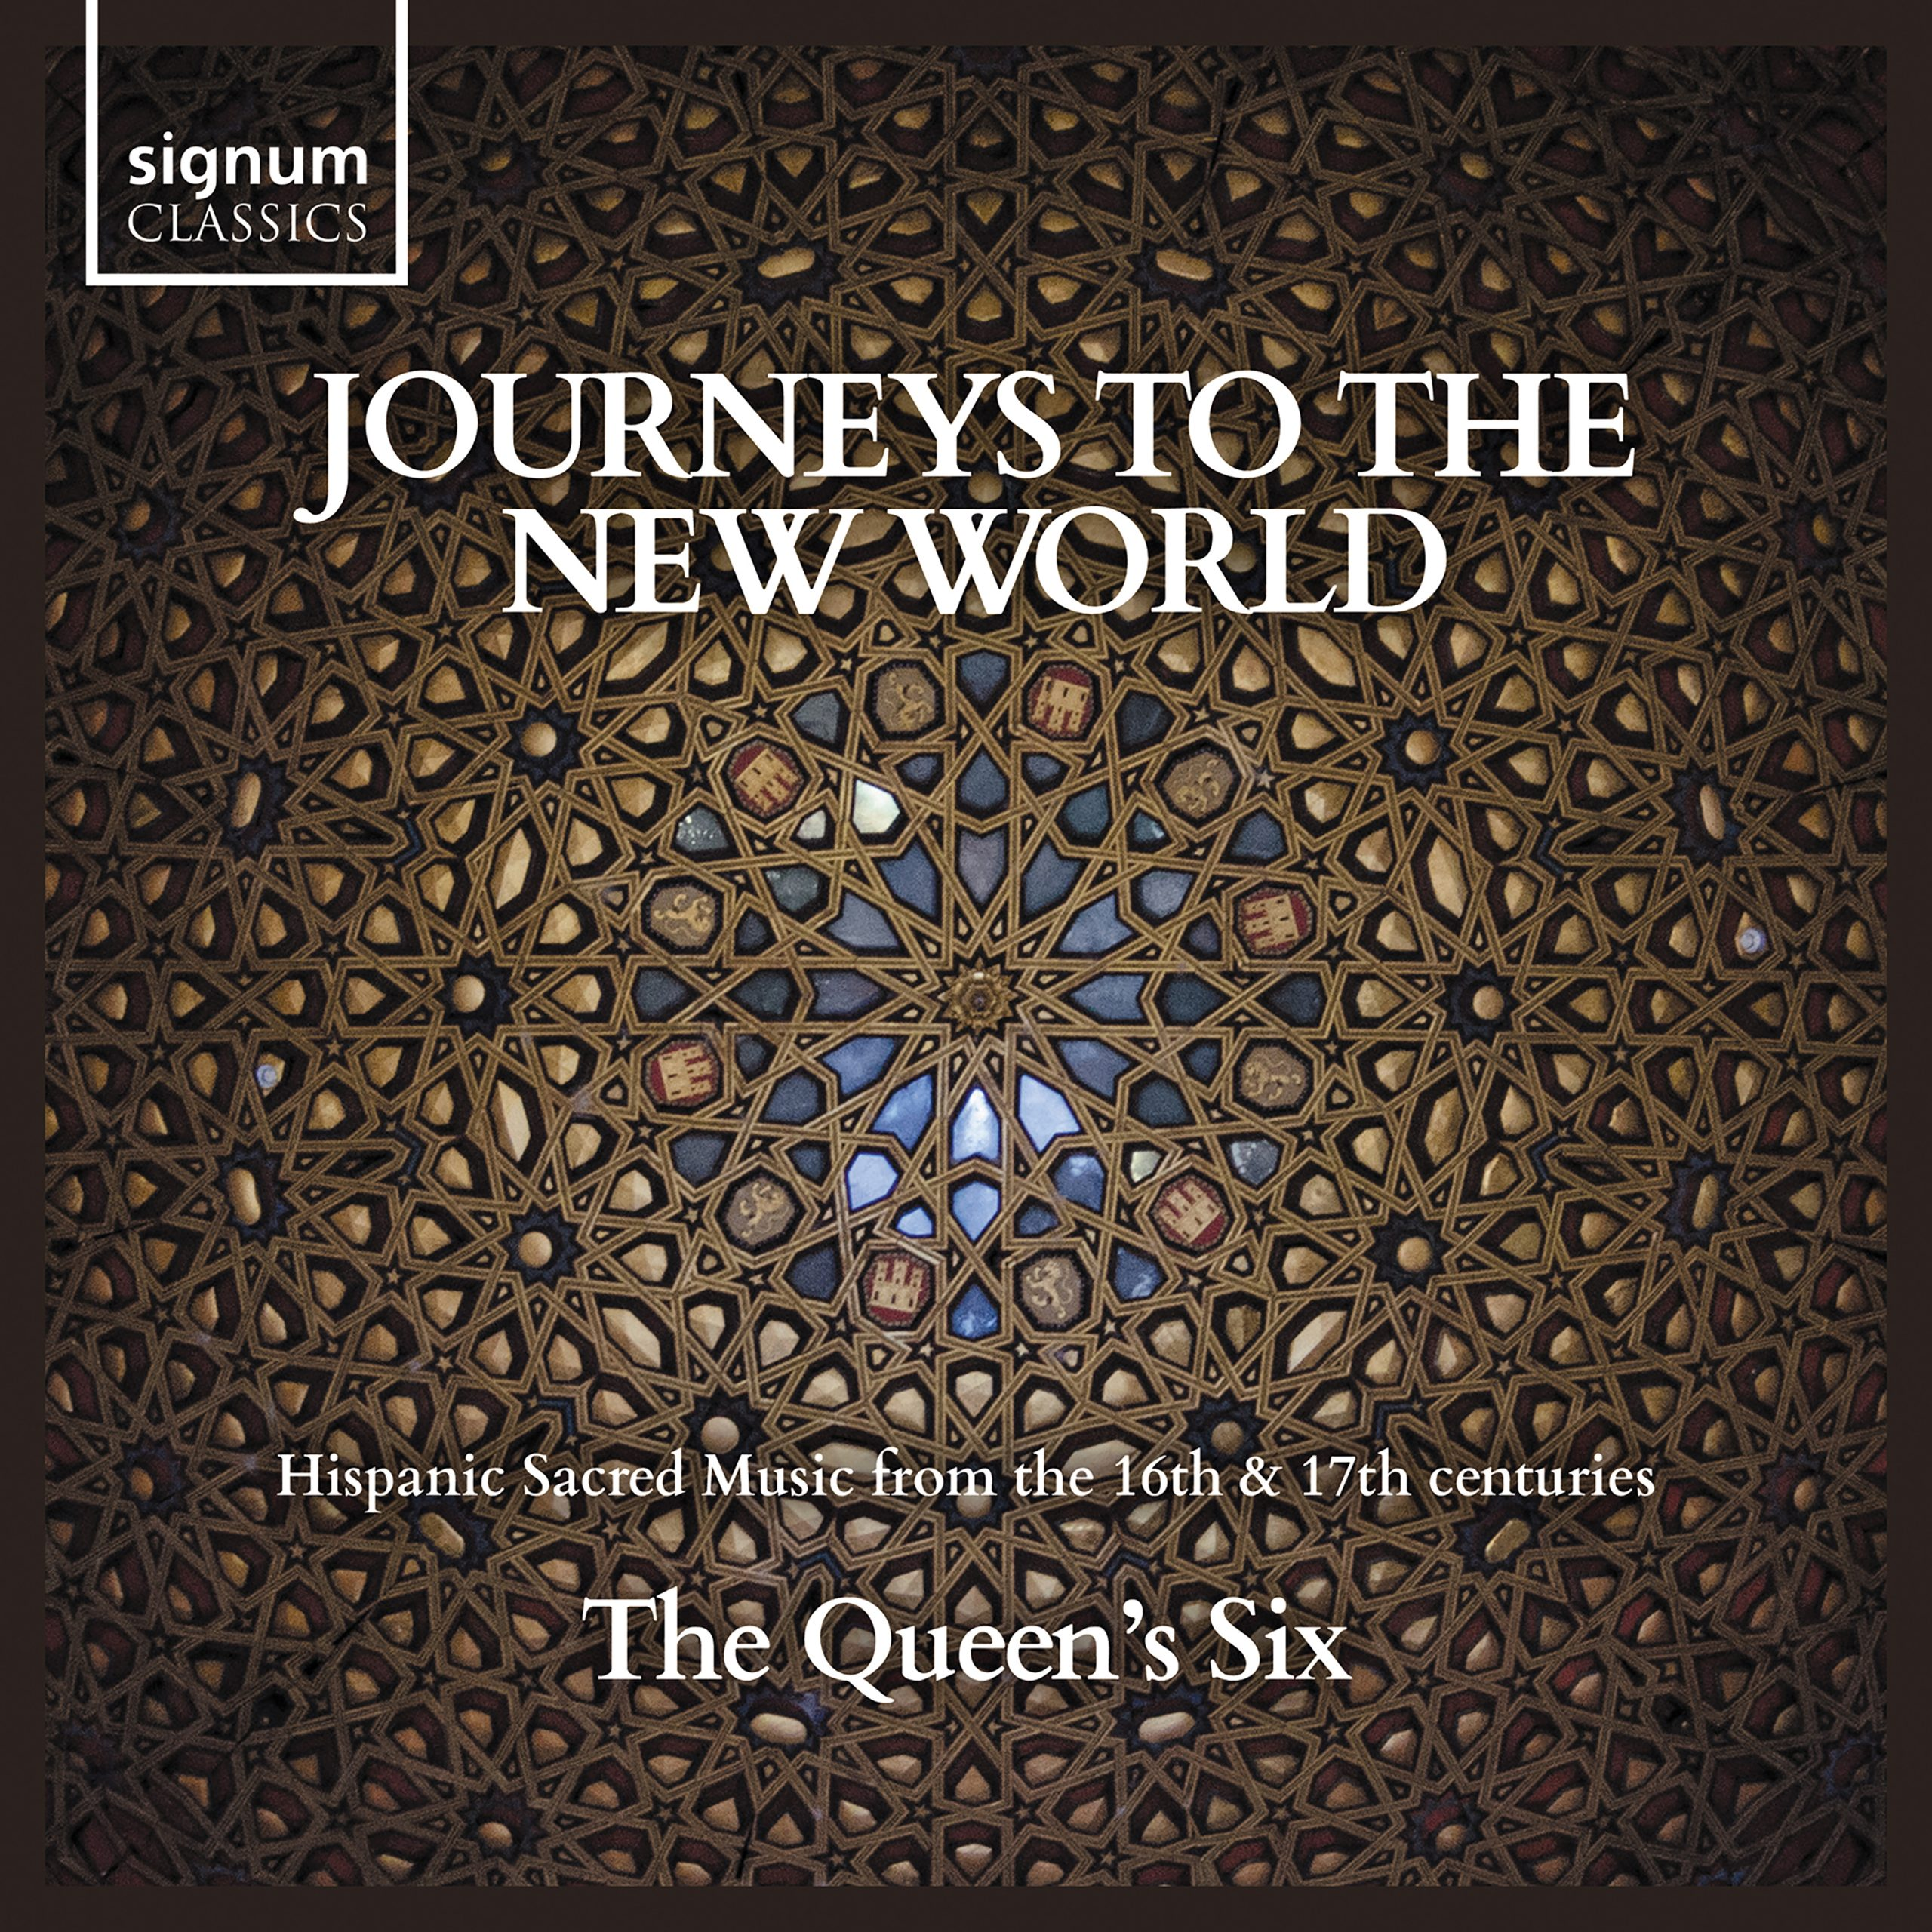 Journeys to the New World